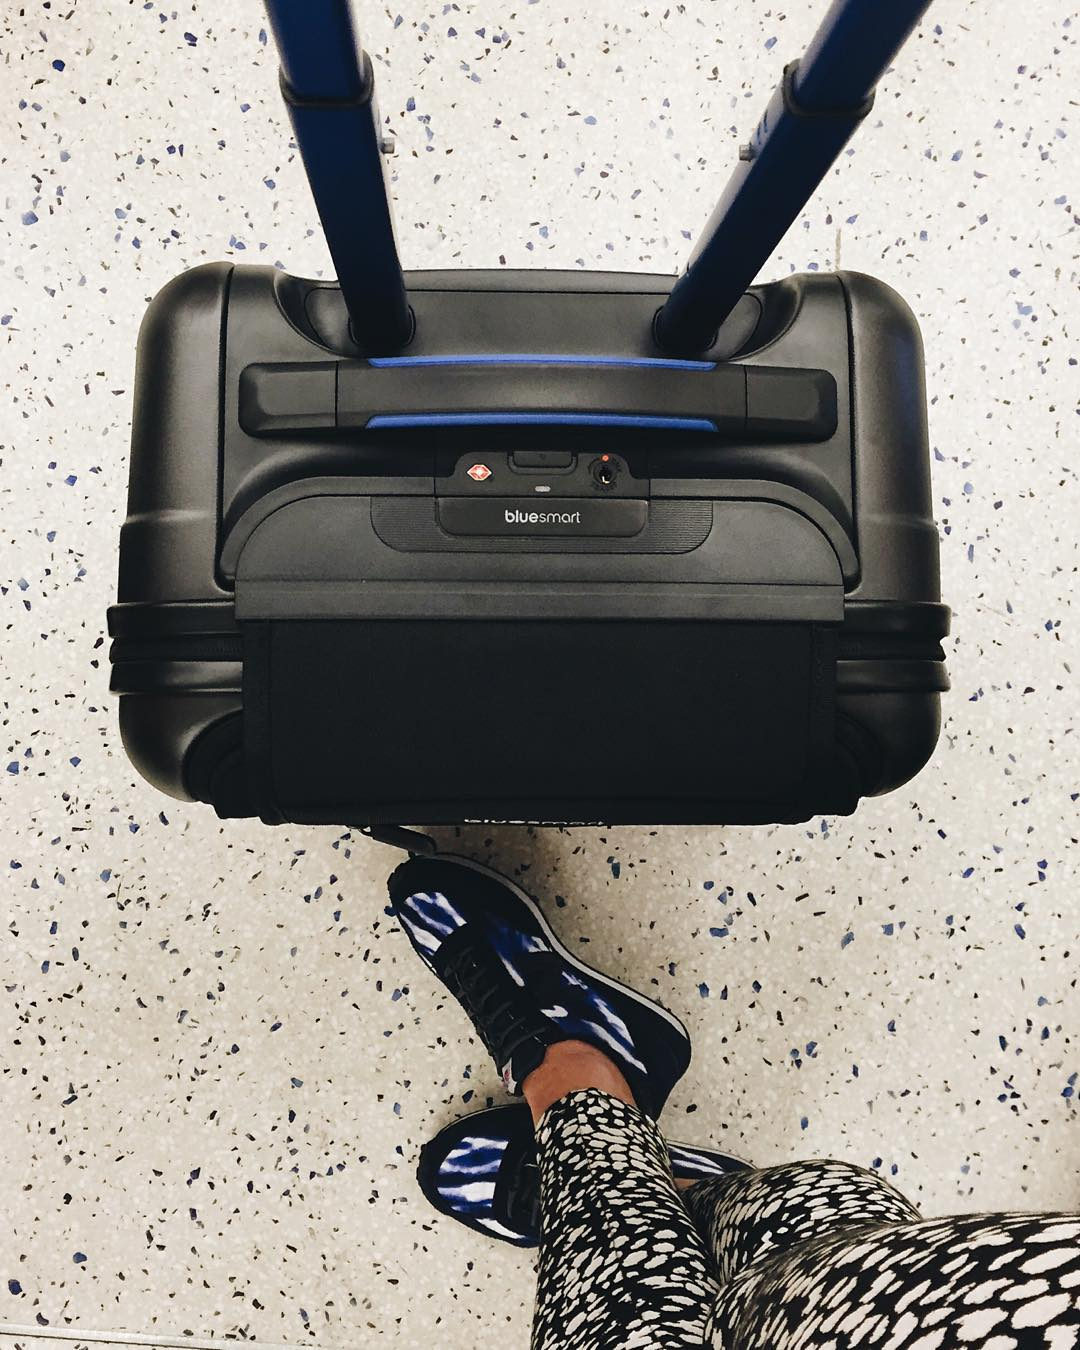 Slip-on kicks and a Bluetooth powered @bluesmart suitcase. Try beating that combo.